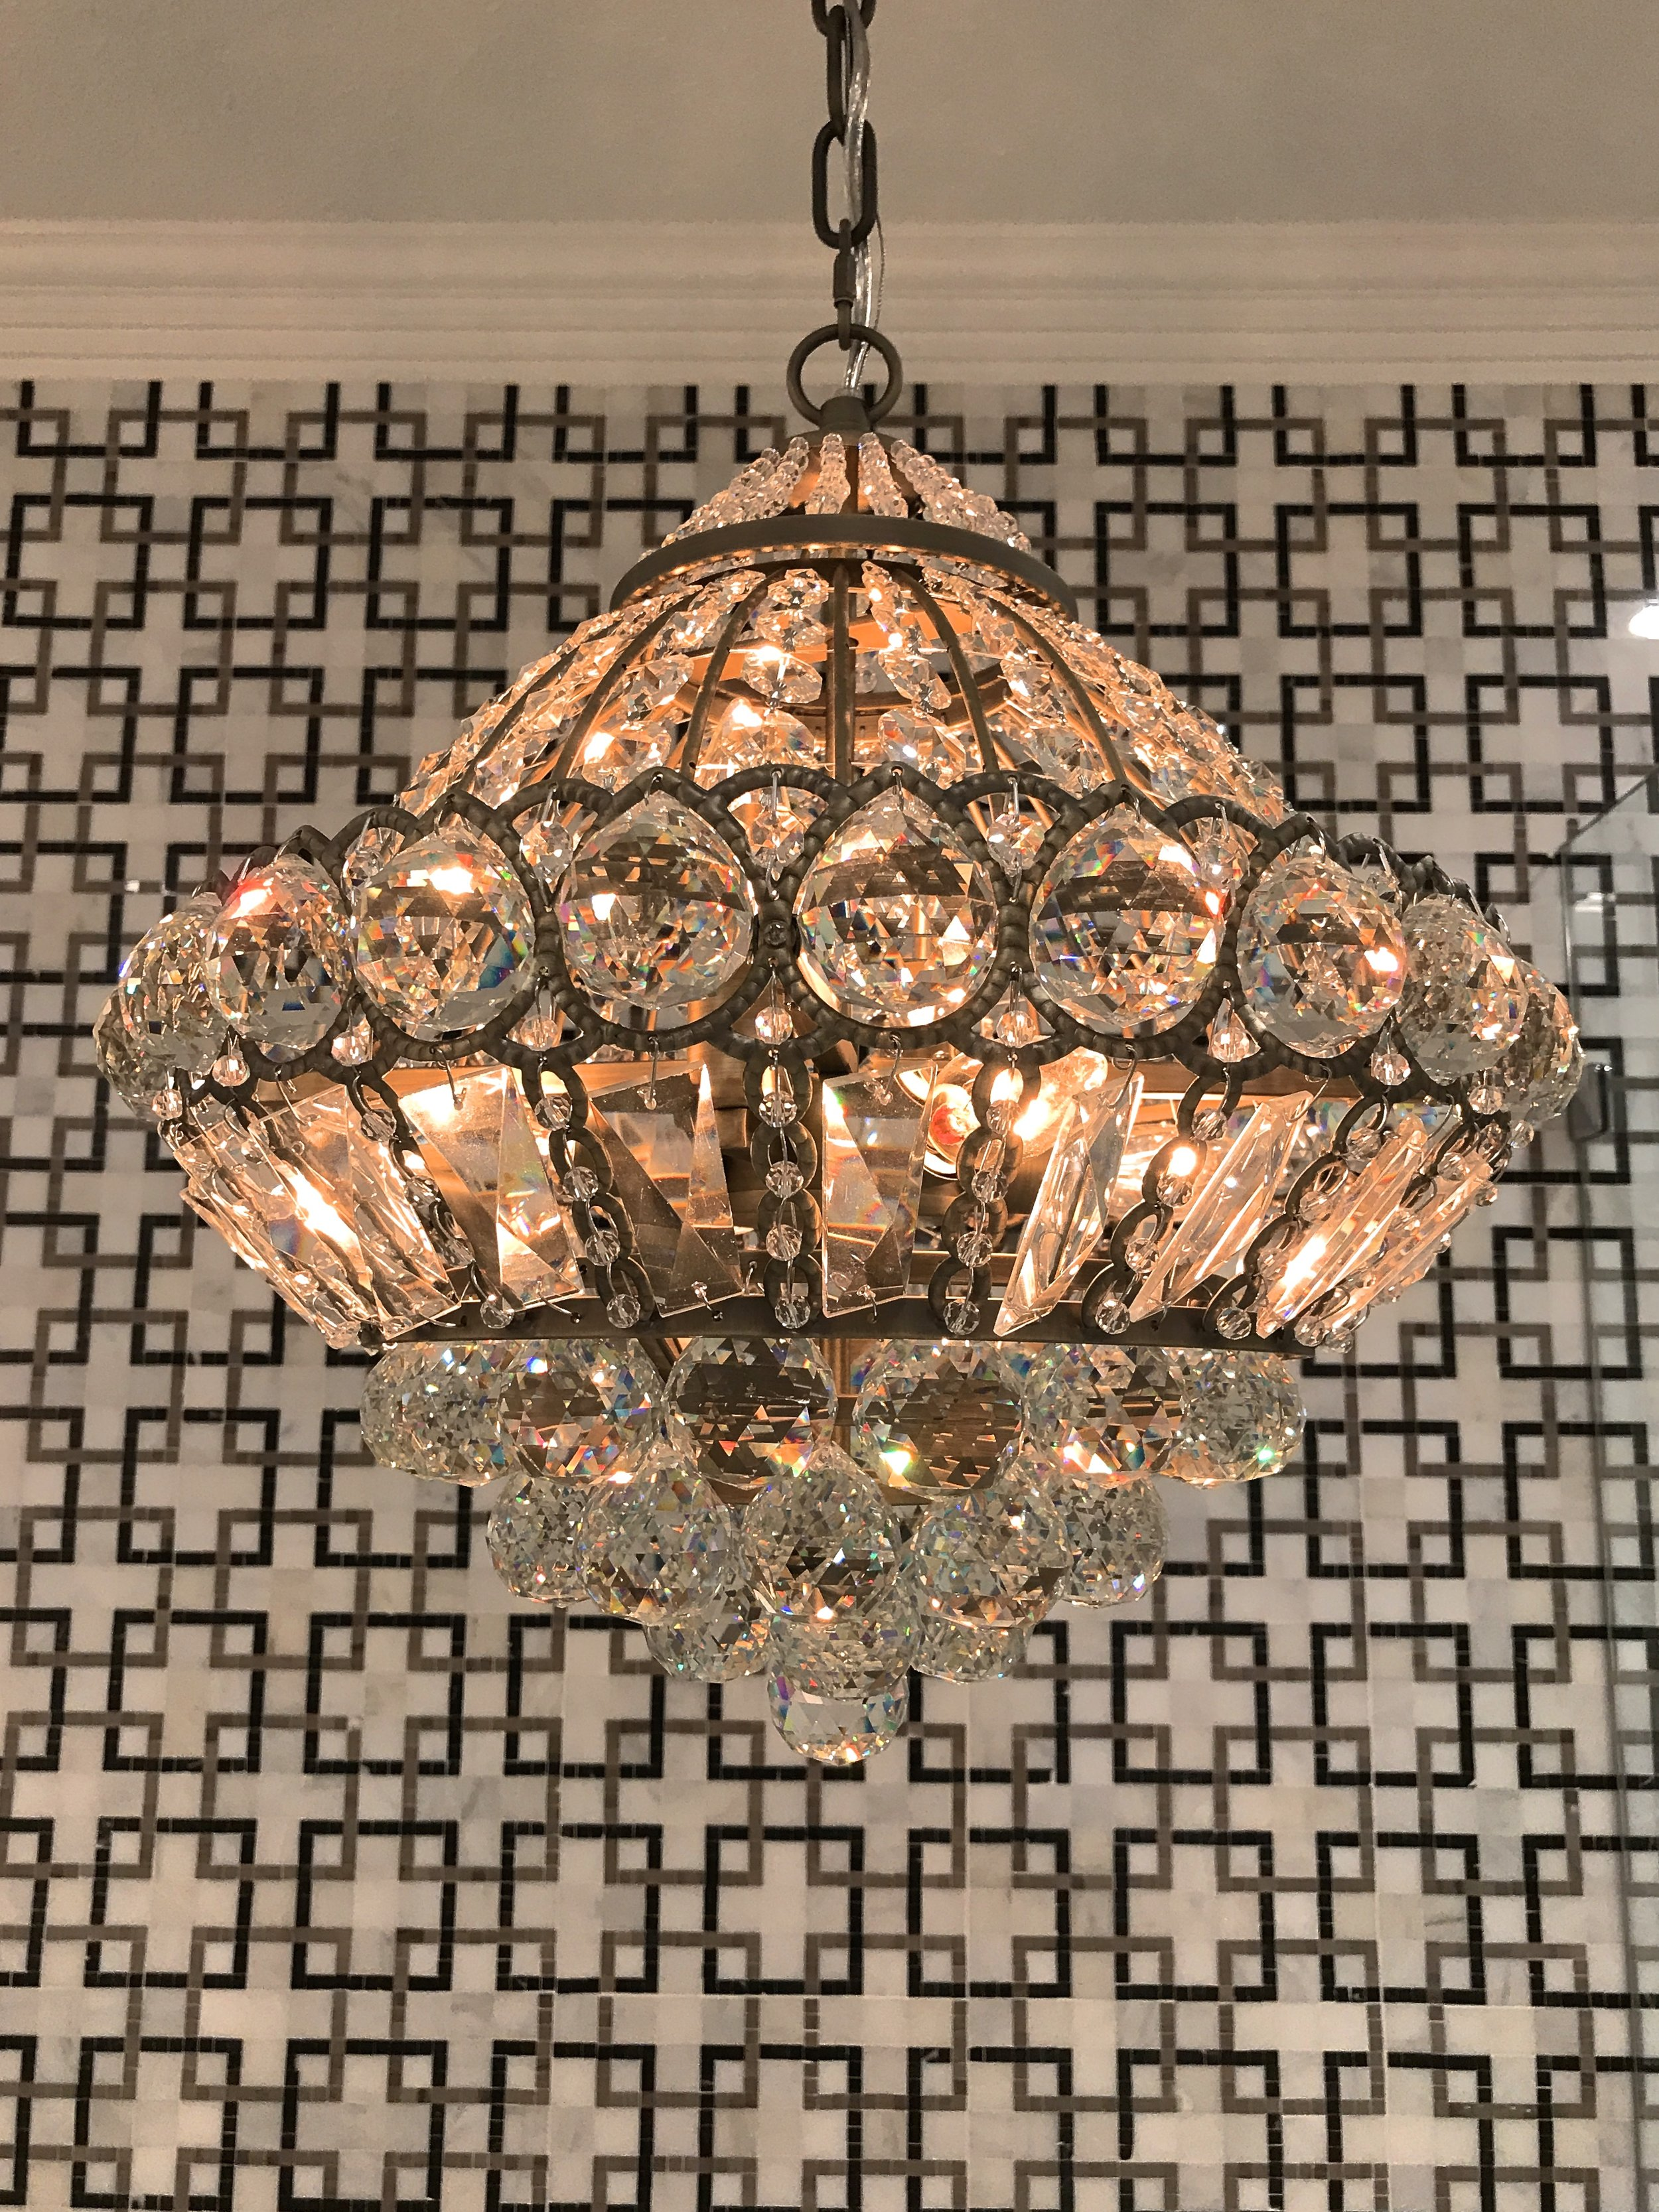 Crystal and brass chandelier over the bath tub.